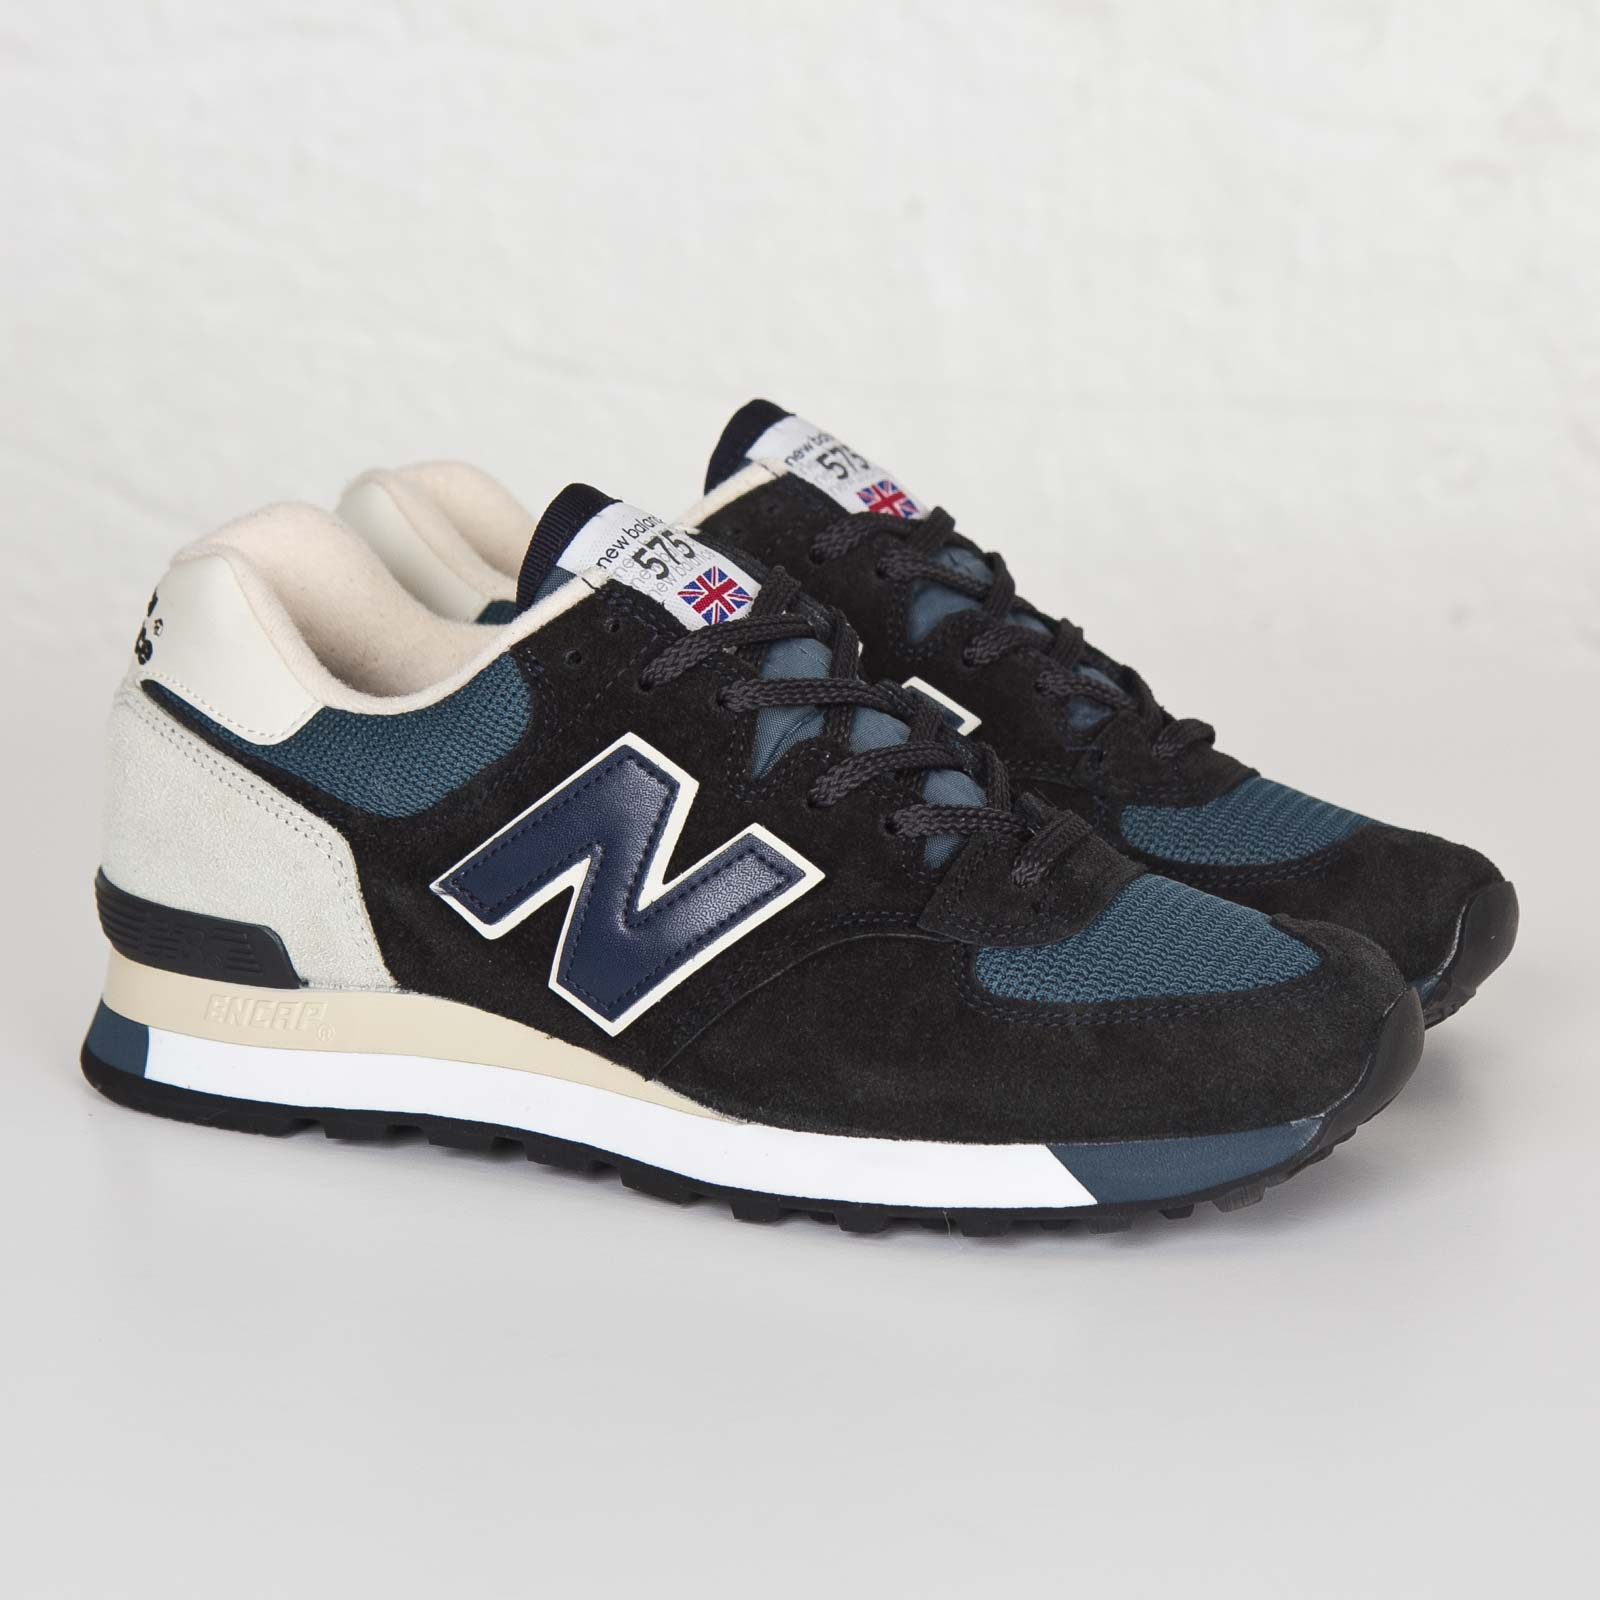 New Balance M575 - M575sng - Sneakersnstuff | sneakers ...